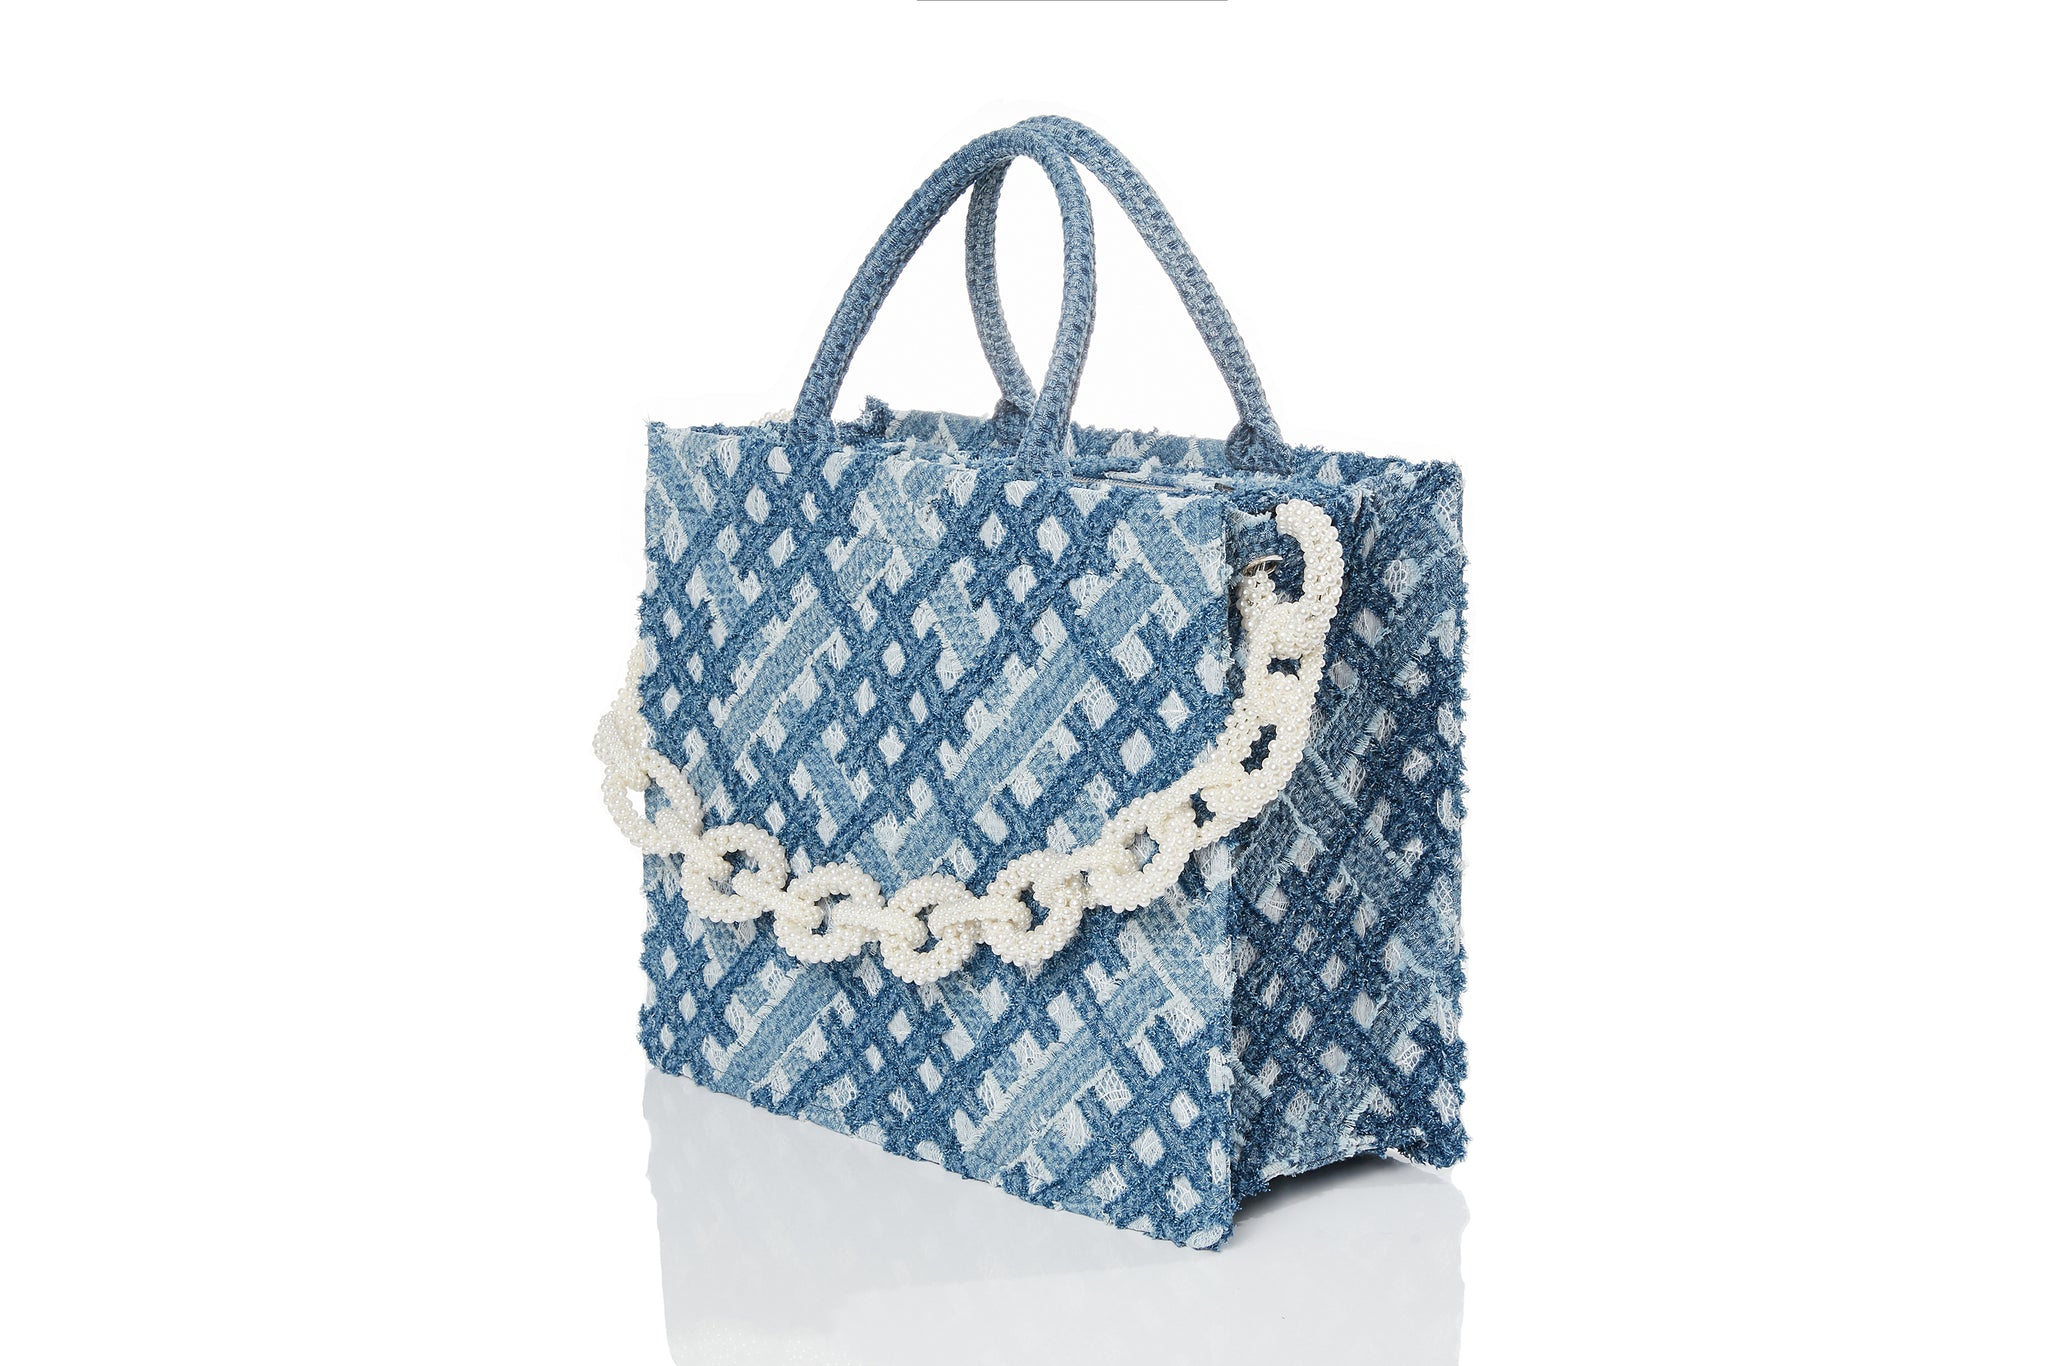 Handwoven Denim on Lace Bag, Large Tote, Pearl Chain, Light Blue